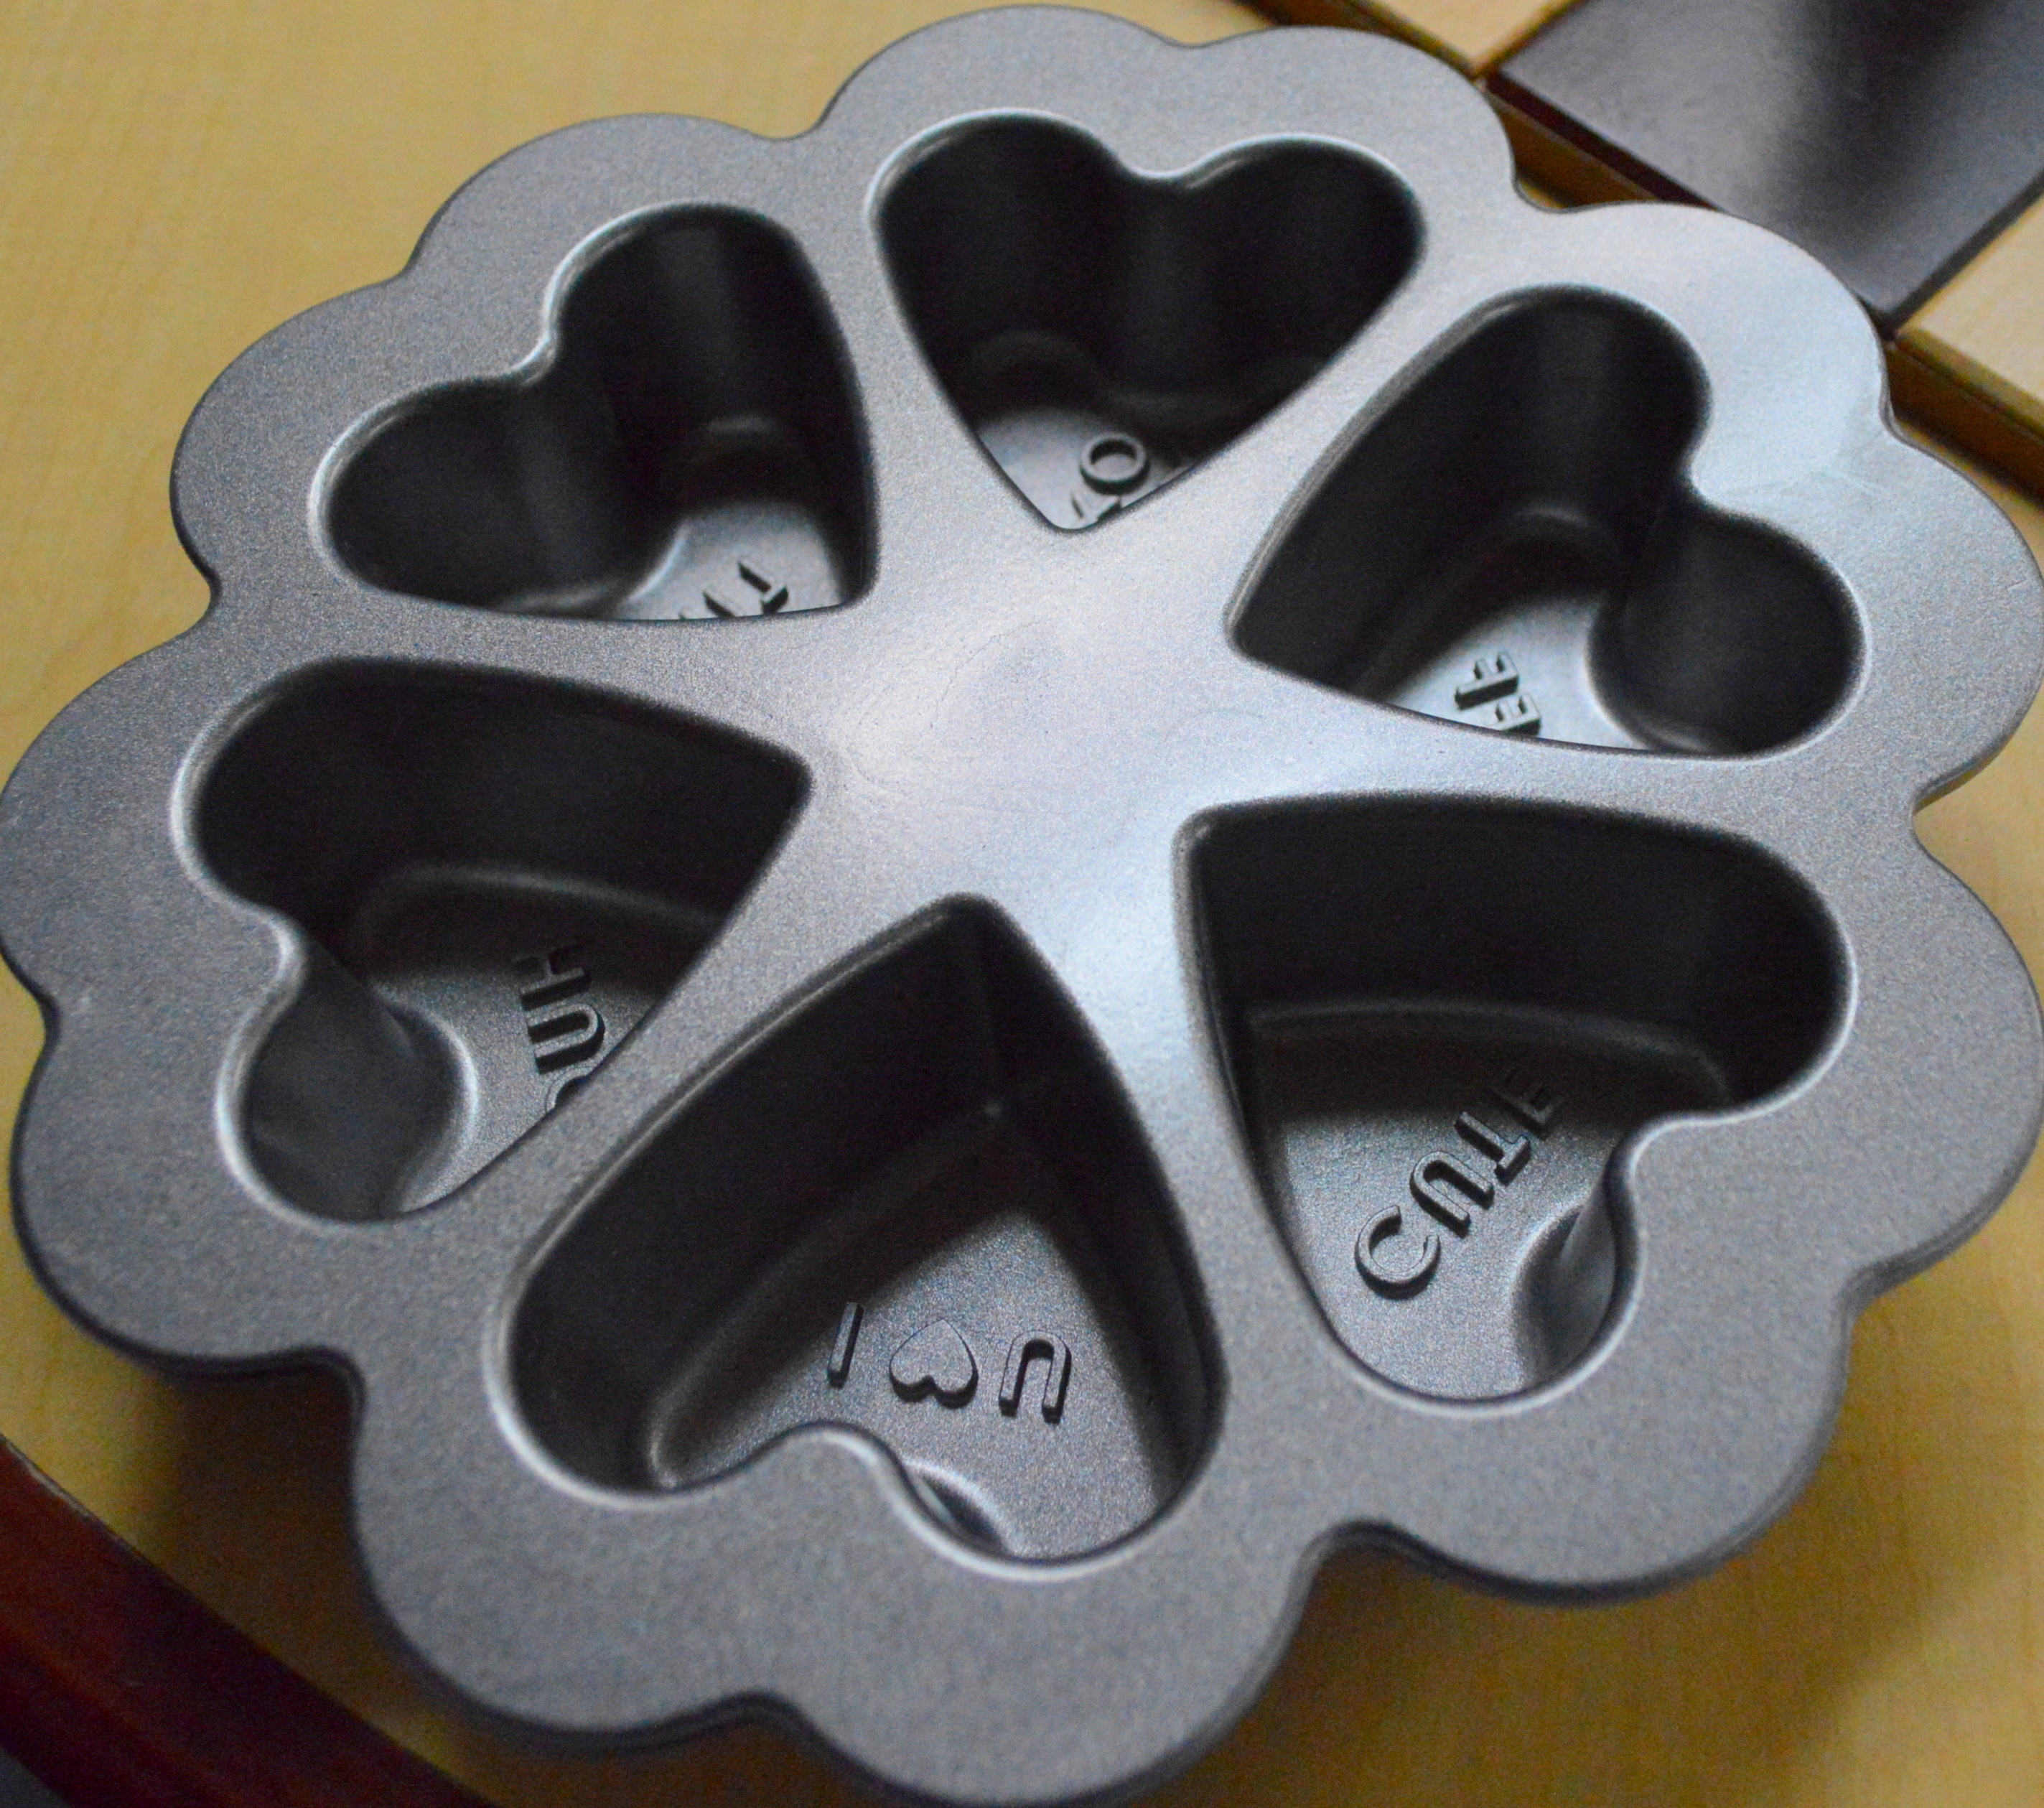 Image showing the Inside of a baking pan with 6 heart shaped openings